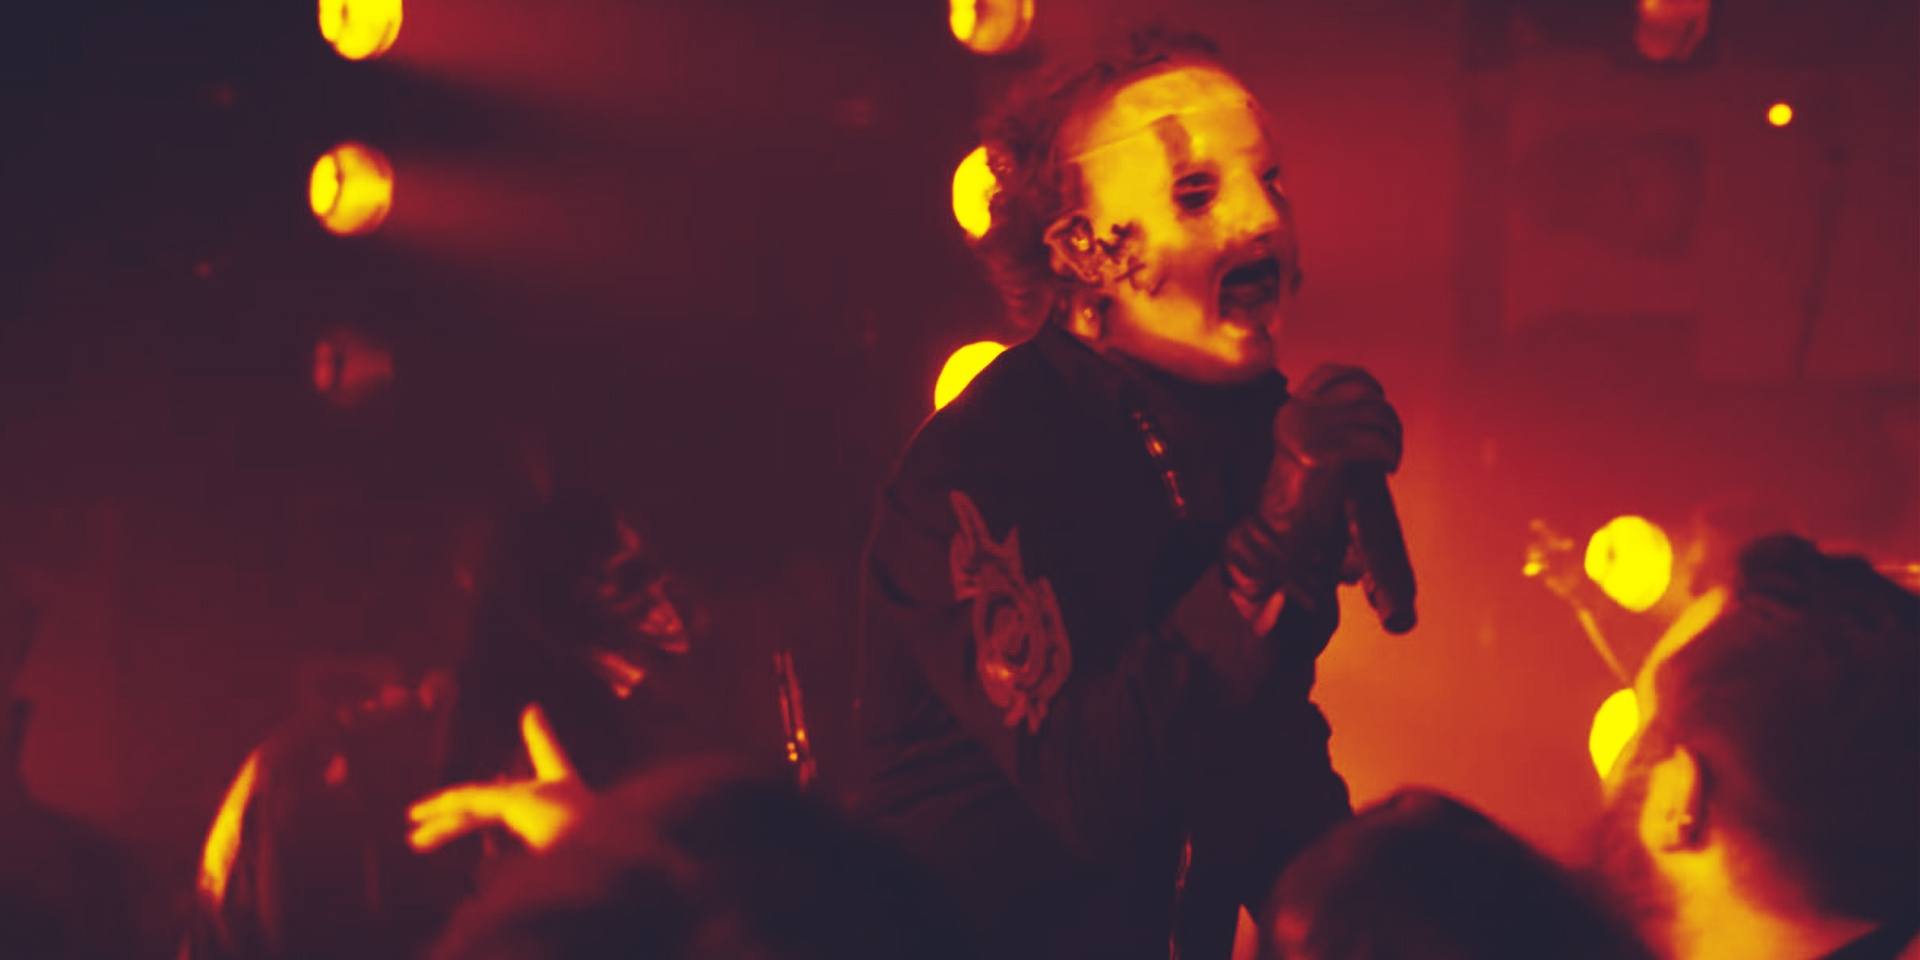 Now you can pretend you're at a Slipknot concert while stuck in lockdown – watch